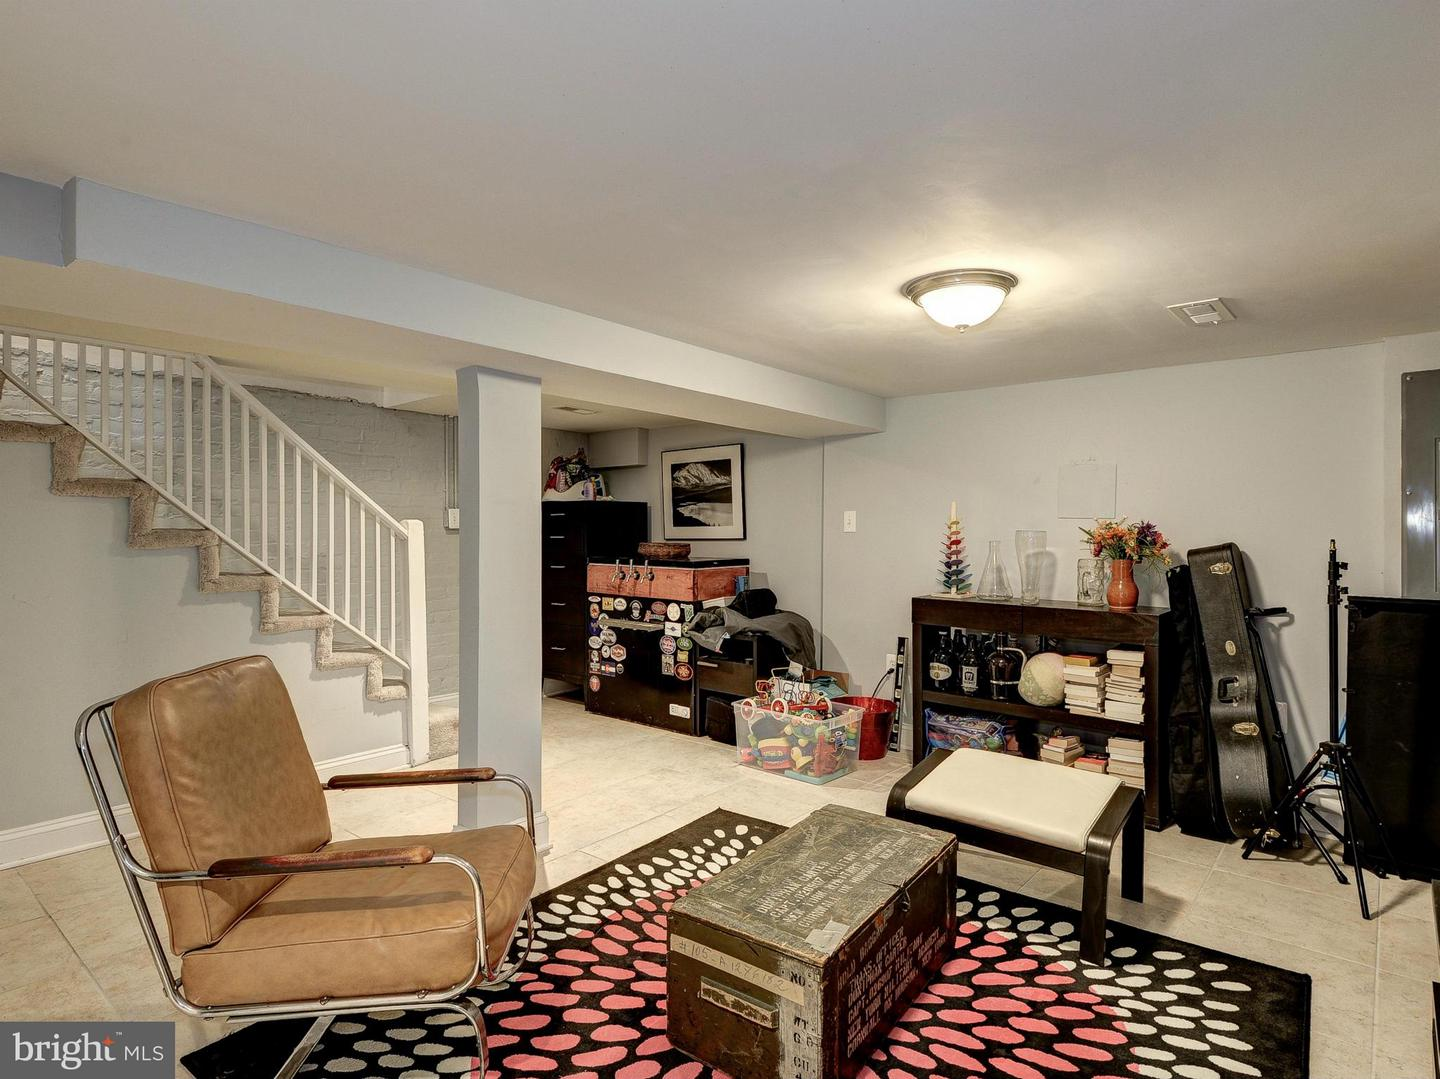 Additional photo for property listing at 405 Webster St NW 405 Webster St NW Washington, District Of Columbia 20011 United States